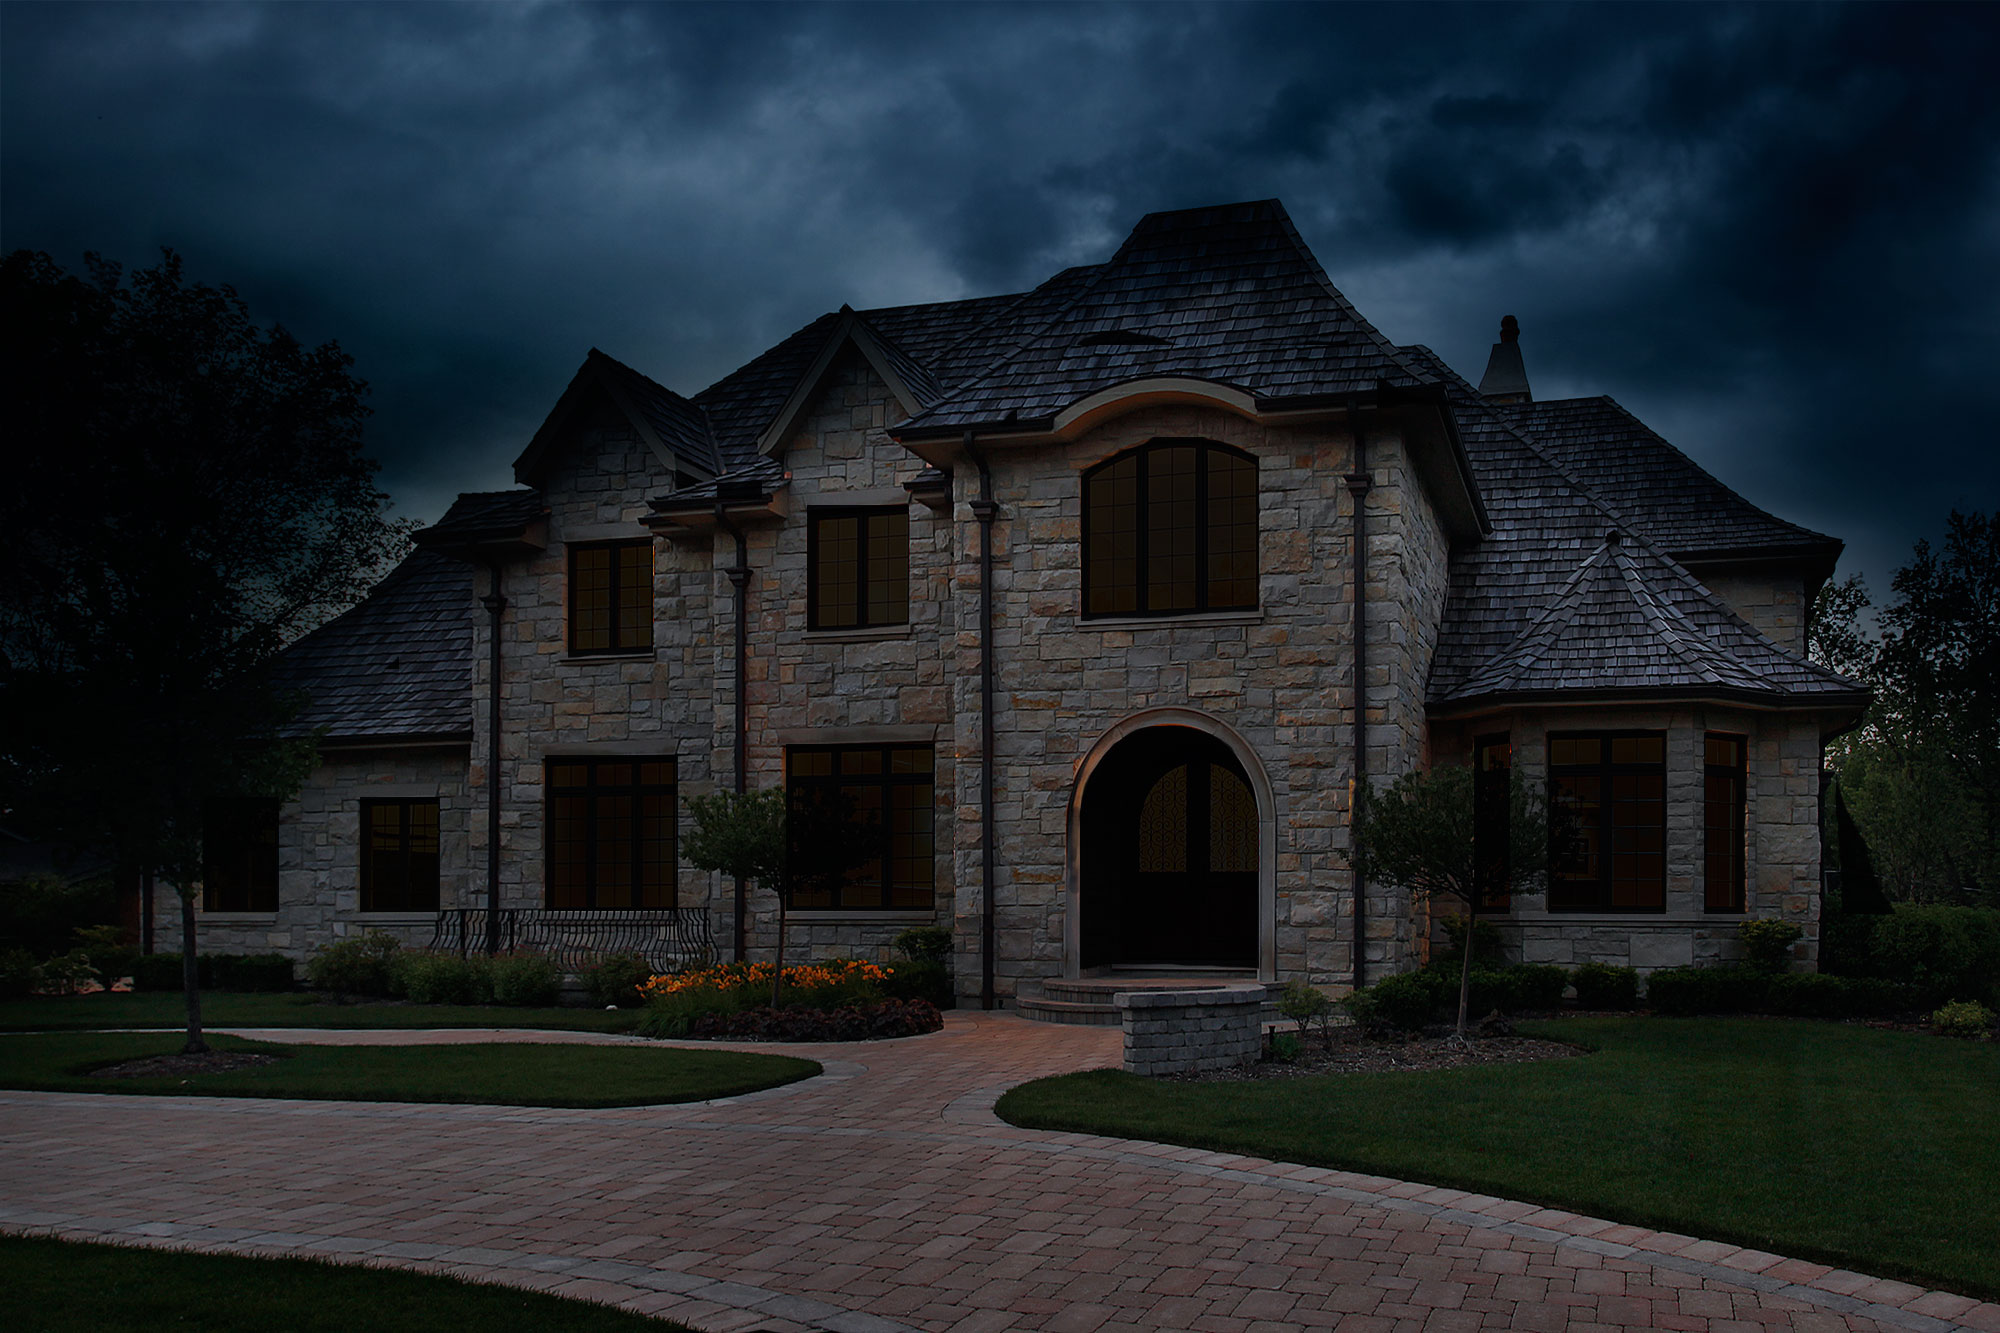 Home goes dark in a black out